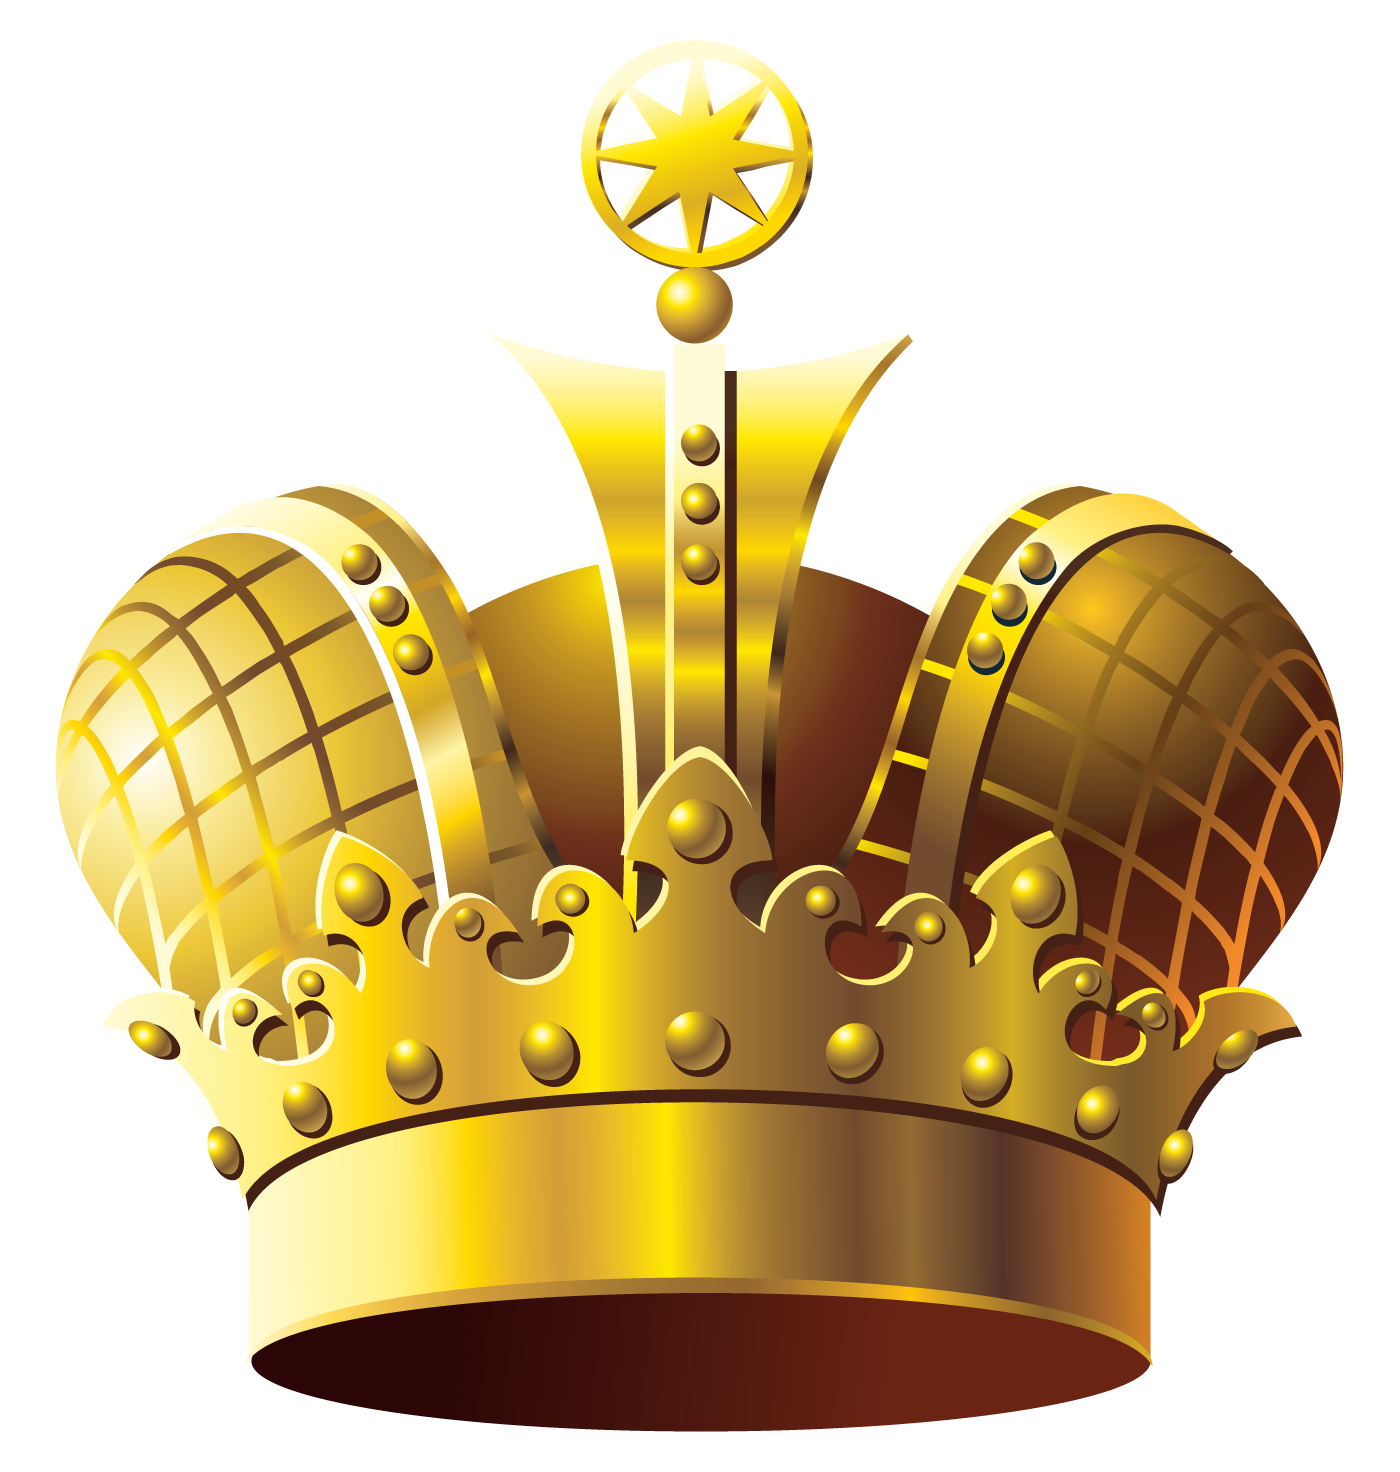 Golden m png. Crown clipart gallery yopriceville